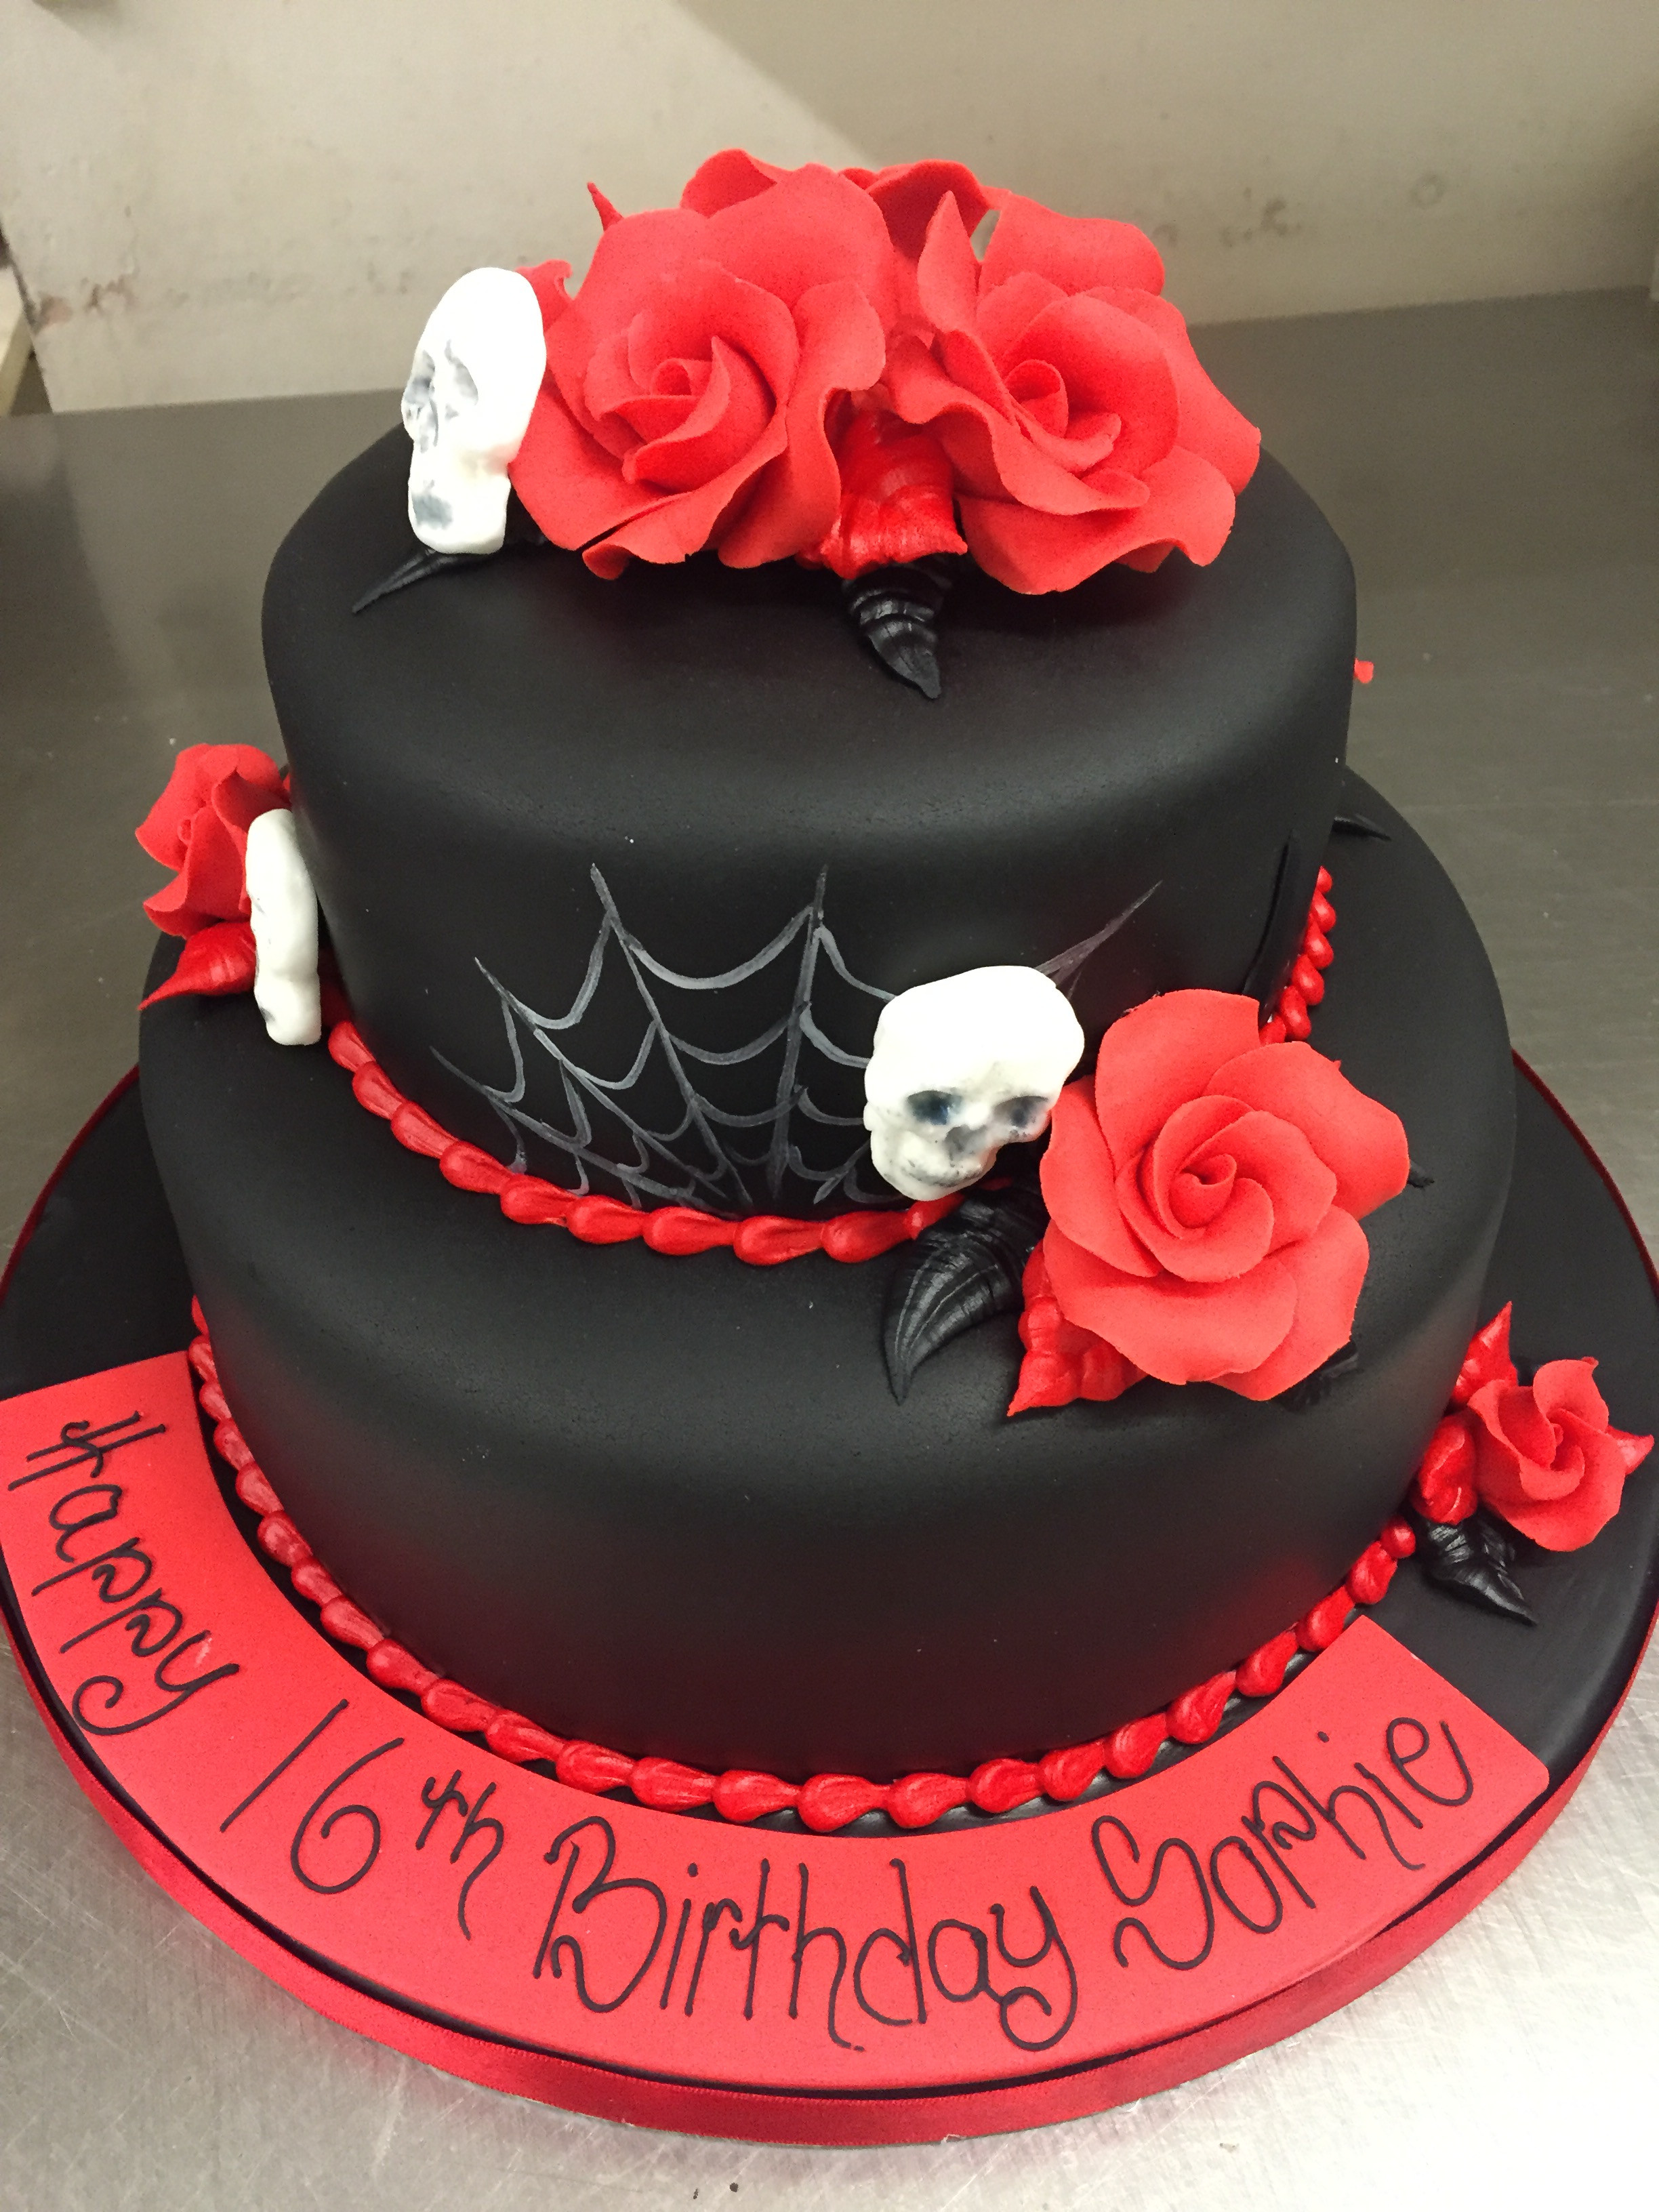 Best ideas about Gothic Birthday Cake . Save or Pin Gothic Birthday Cake M Rays Bakery Now.